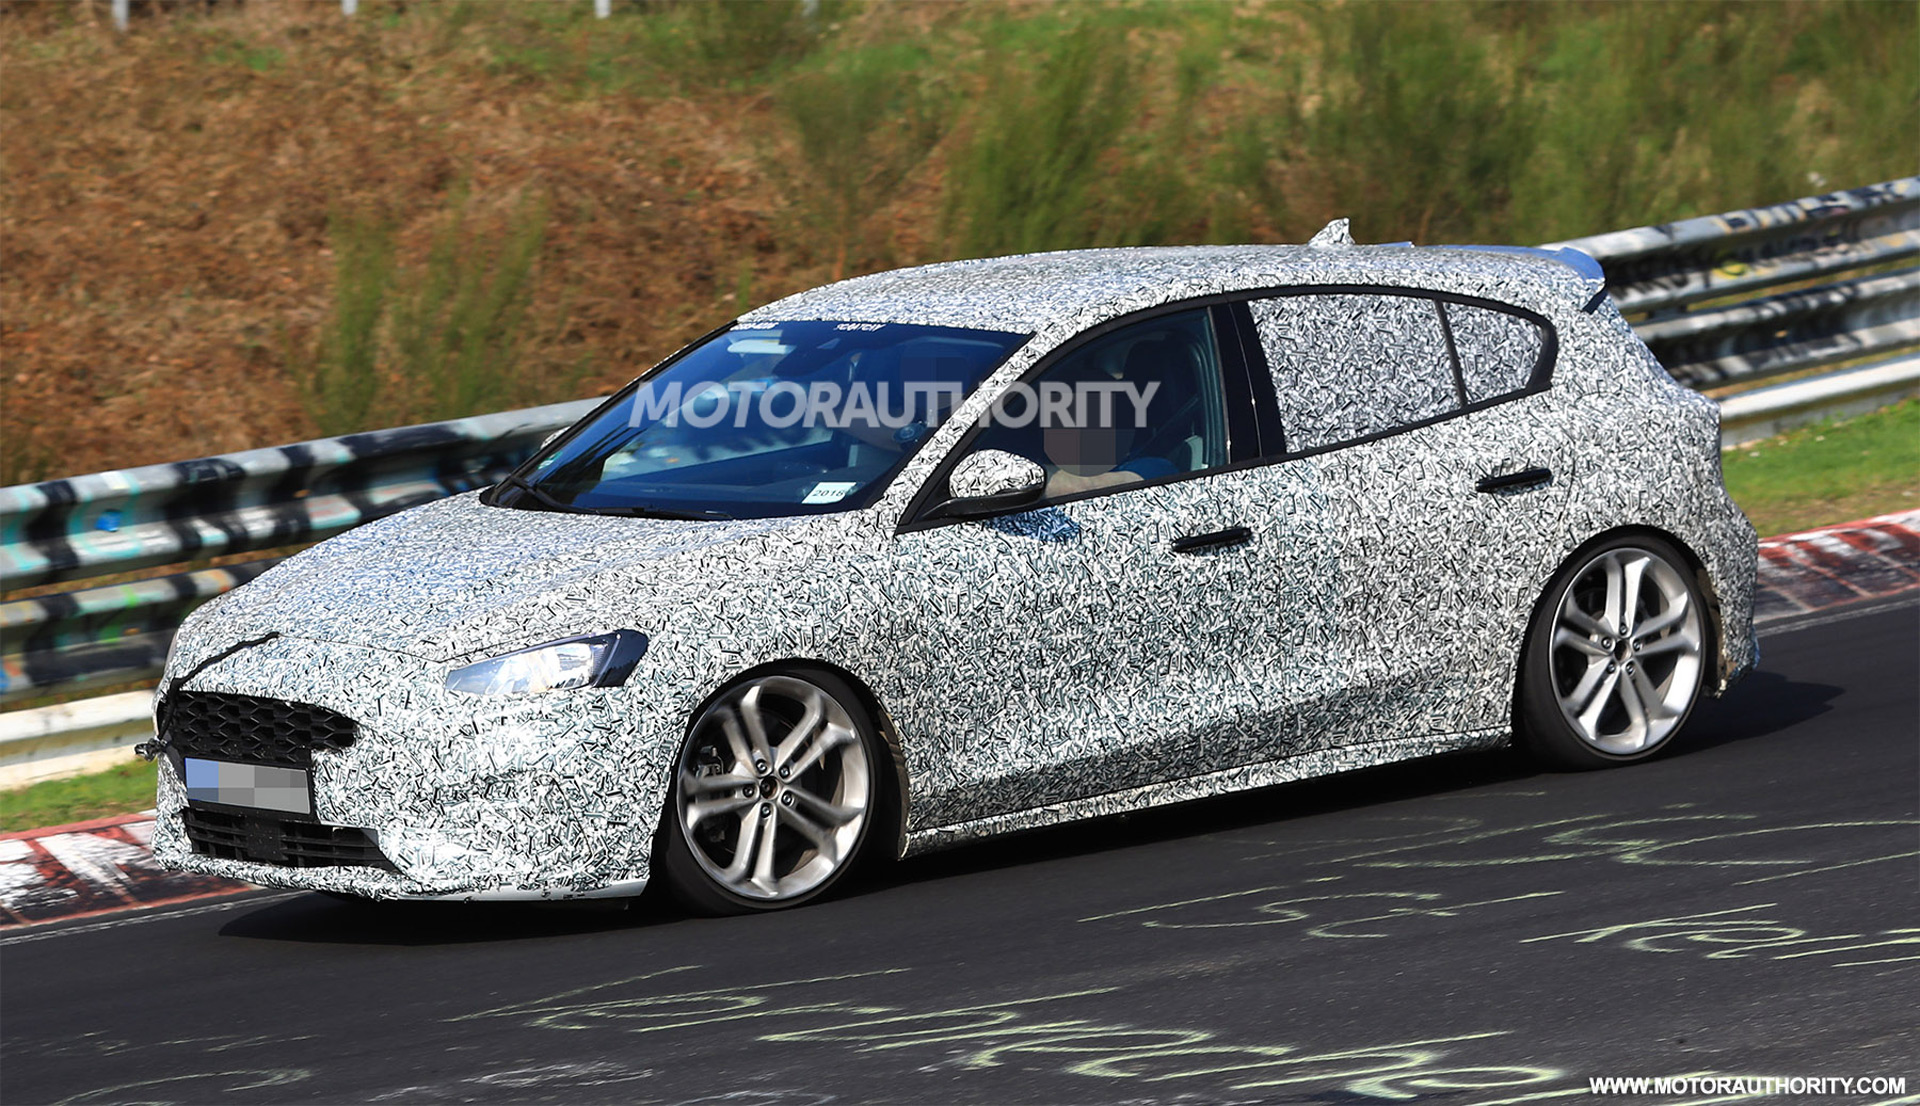 Ford's new Focus ST tipped to receive RS's 2.3-liter engine